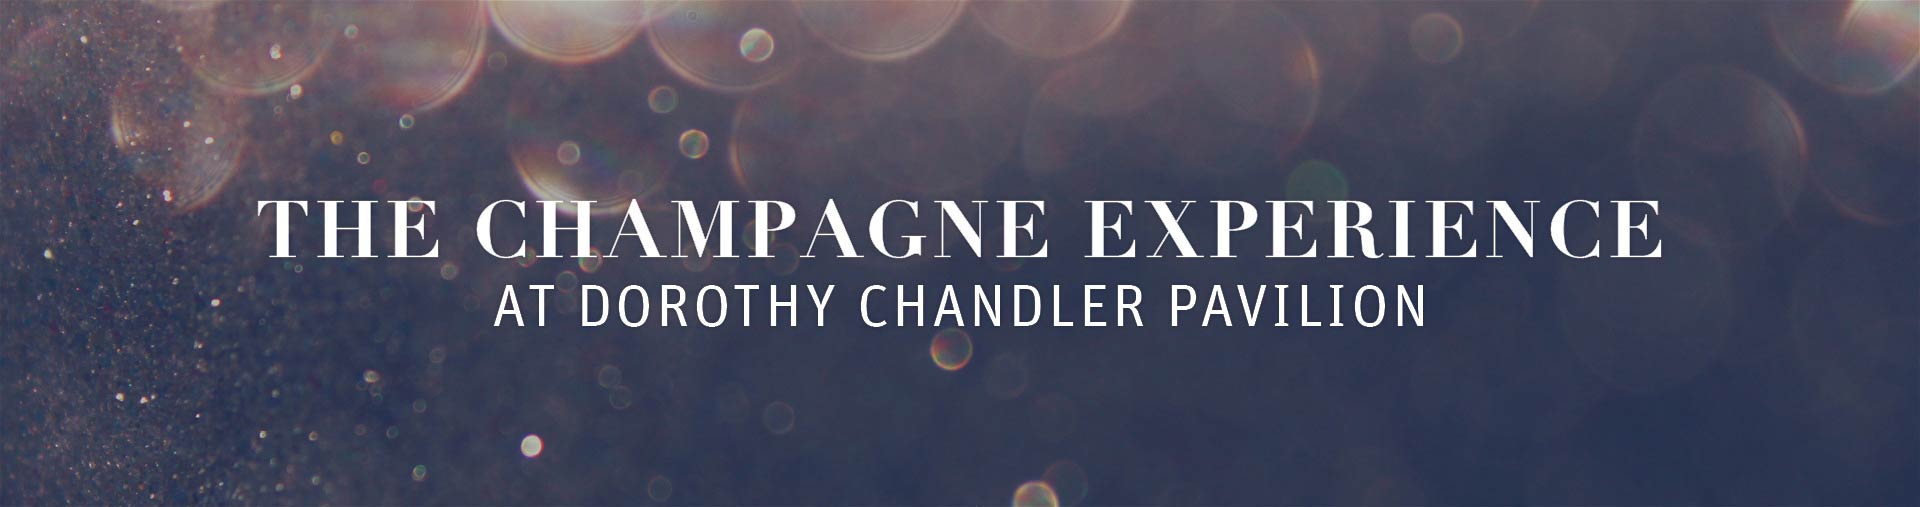 CHAMPAGNE EXPERIENCE